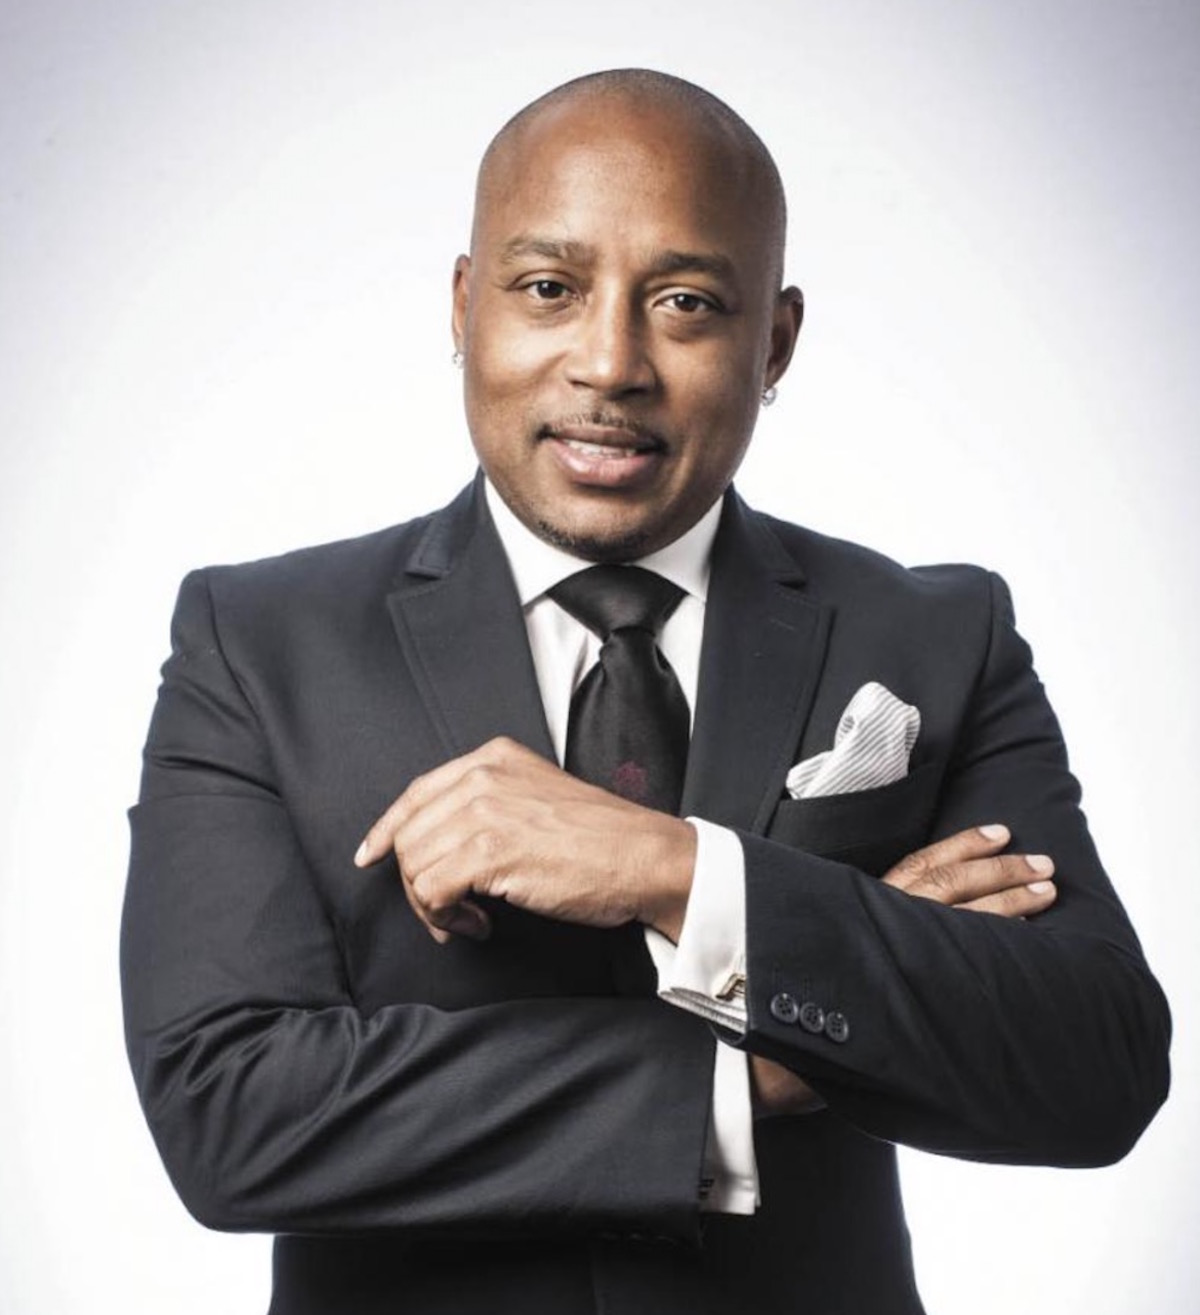 daymond_john_option2_main.jpg